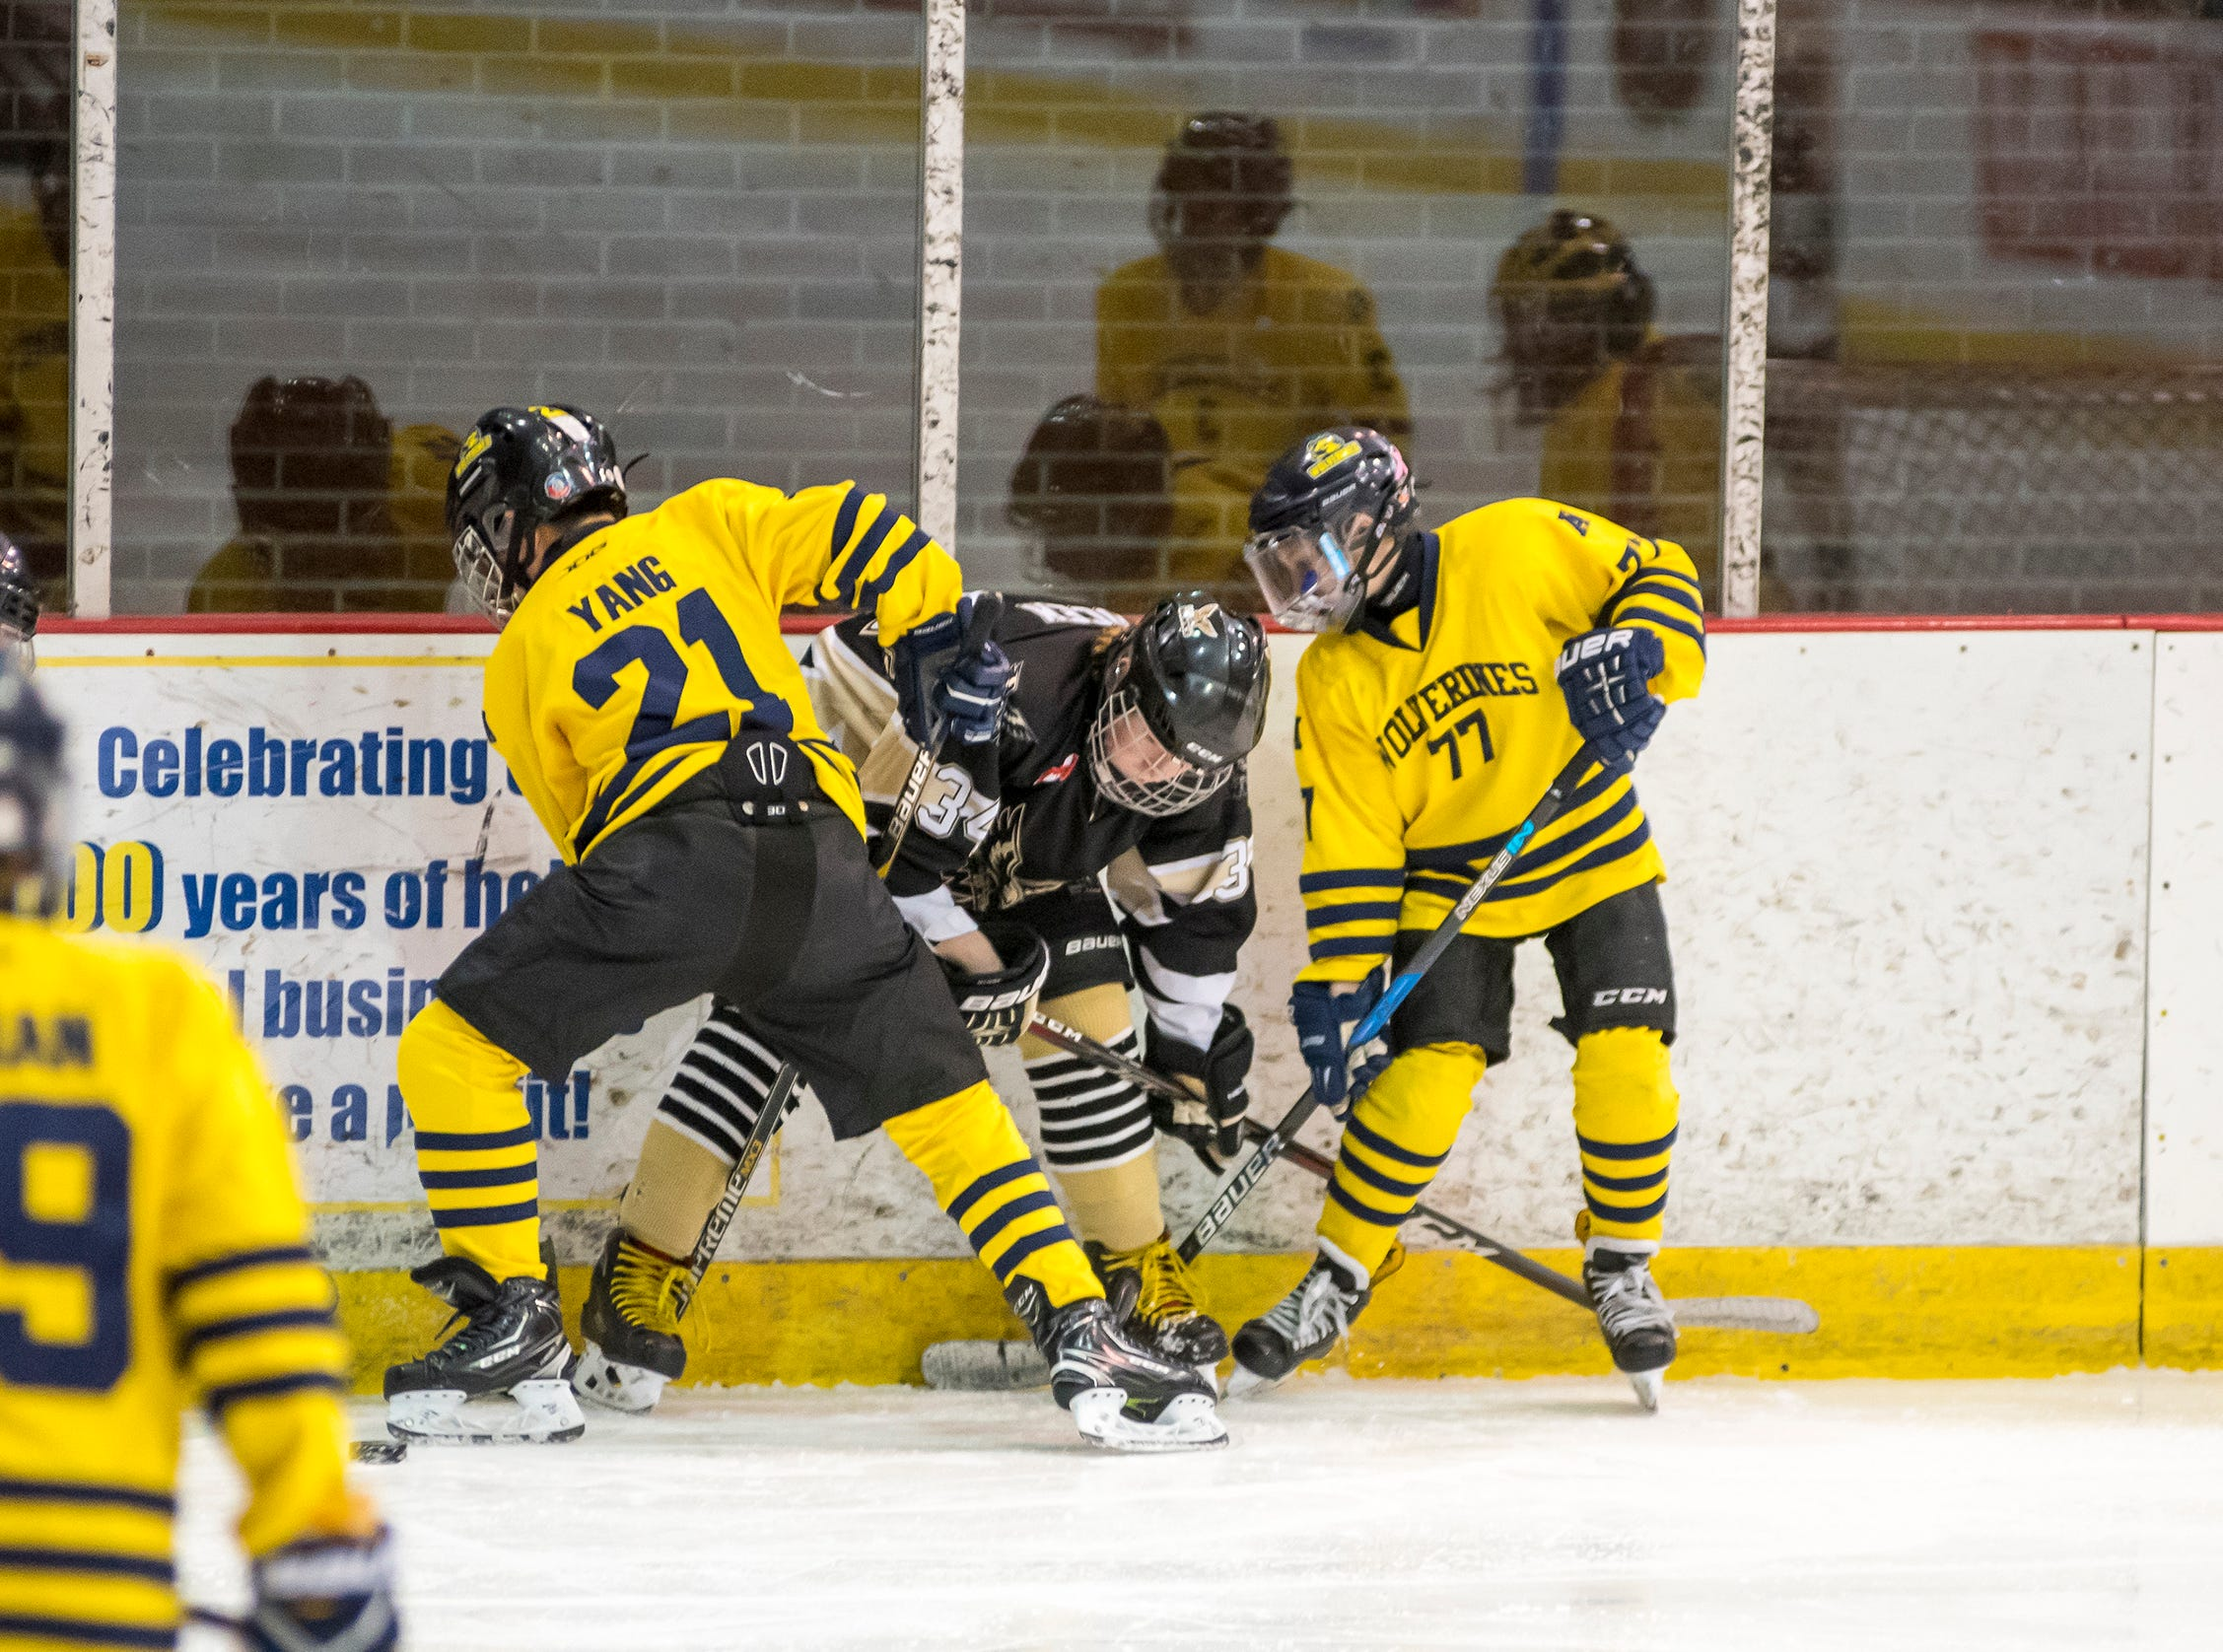 Ann Arbor Wolverines defenseman Anthony Yang (21) and forward Ryan Naughton (77) hold Quinte West Hawks forward Trey Cocek against the wall as they fight for the puck during their Silver Stick Finals PWA match Thursday, Jan. 10, 2019 at McMorran Arena.